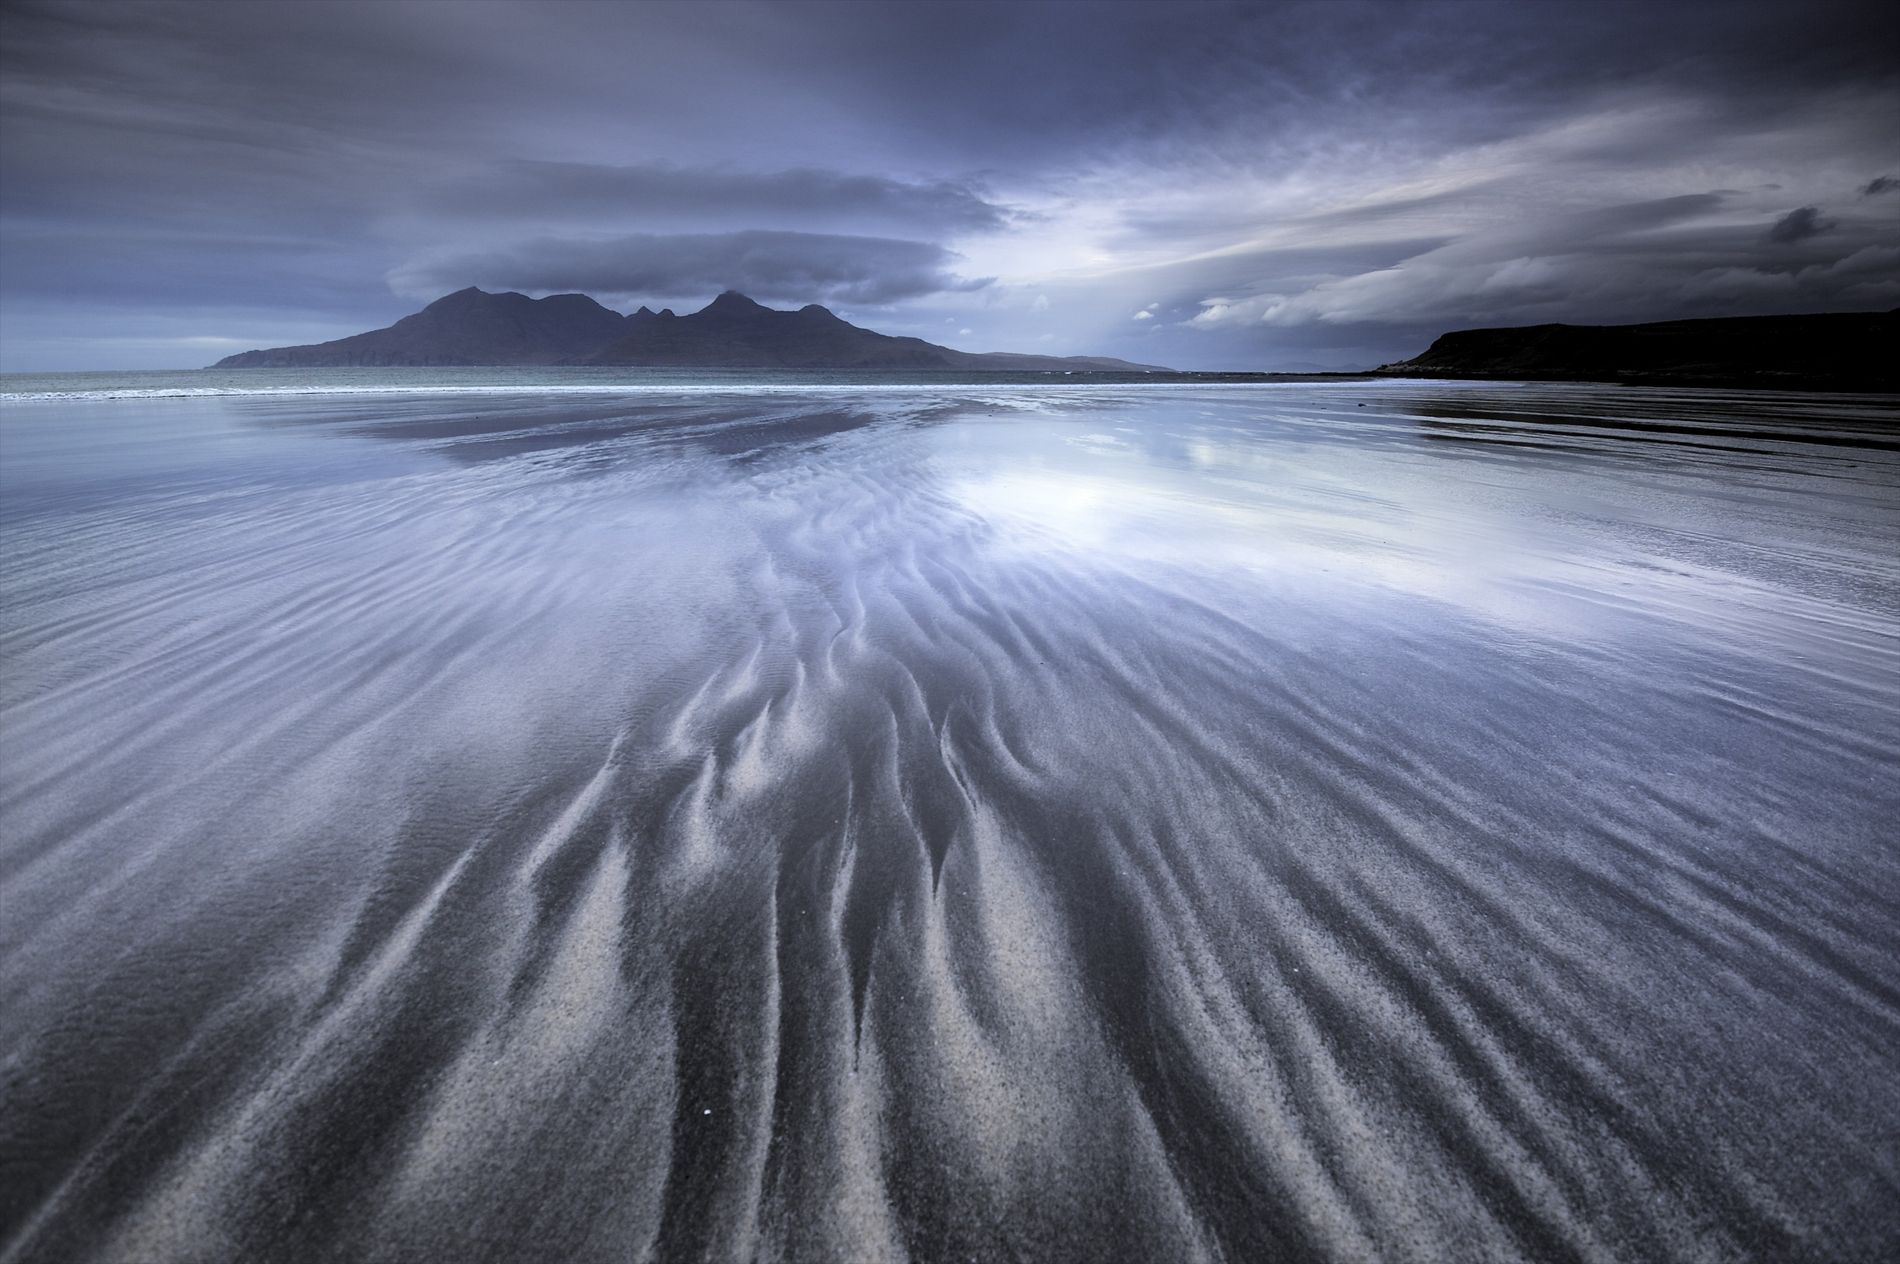 Looking out at the Isle of Rum from Laig Bay on the Isle of Eigg. The ...